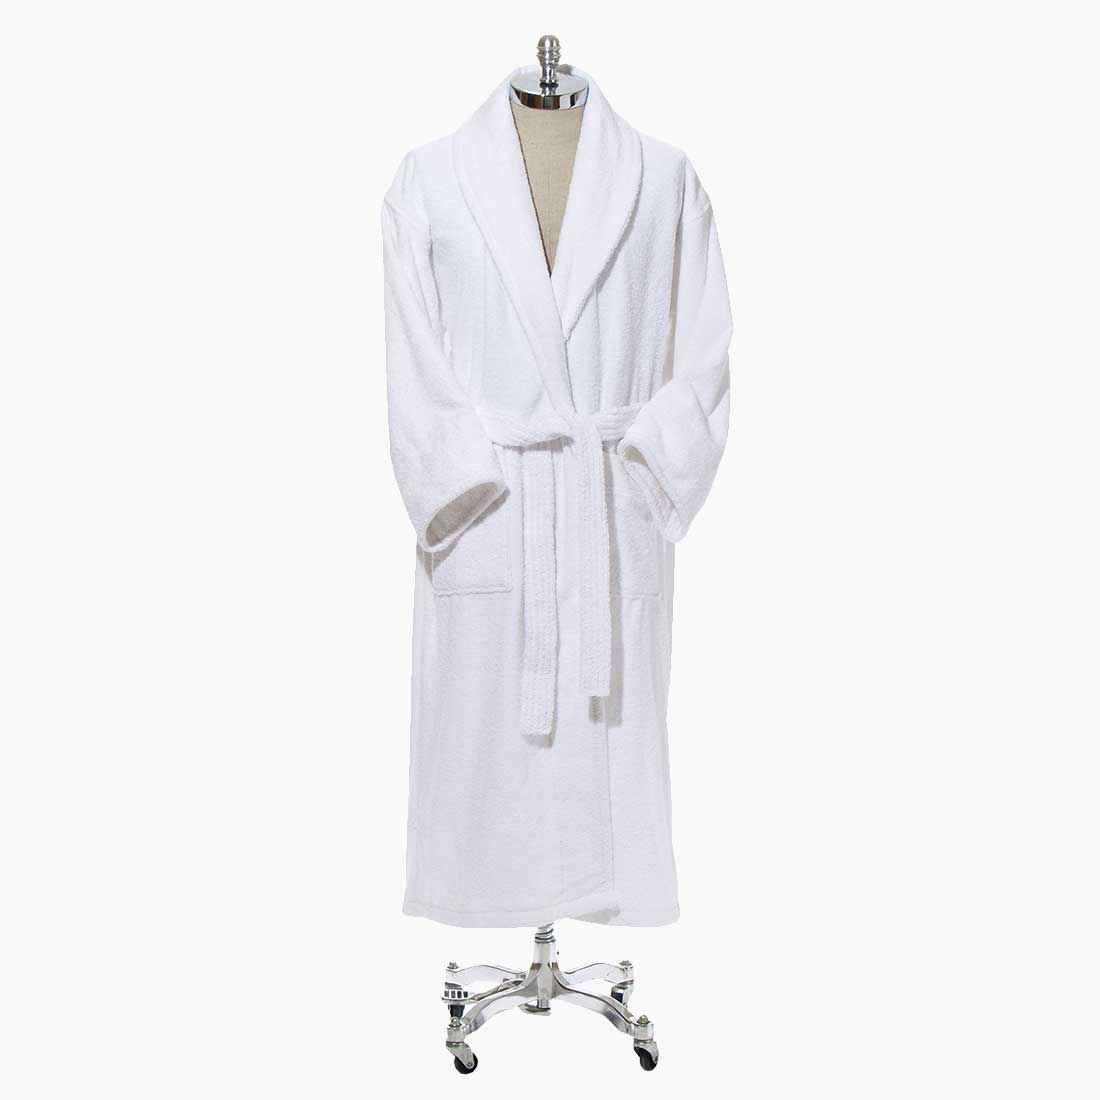 Bed & Bath White Luxury Bath Robe from Bed & Bath, Inc. | A family owned company specializing in Rollaway Folding Beds & Guest Products